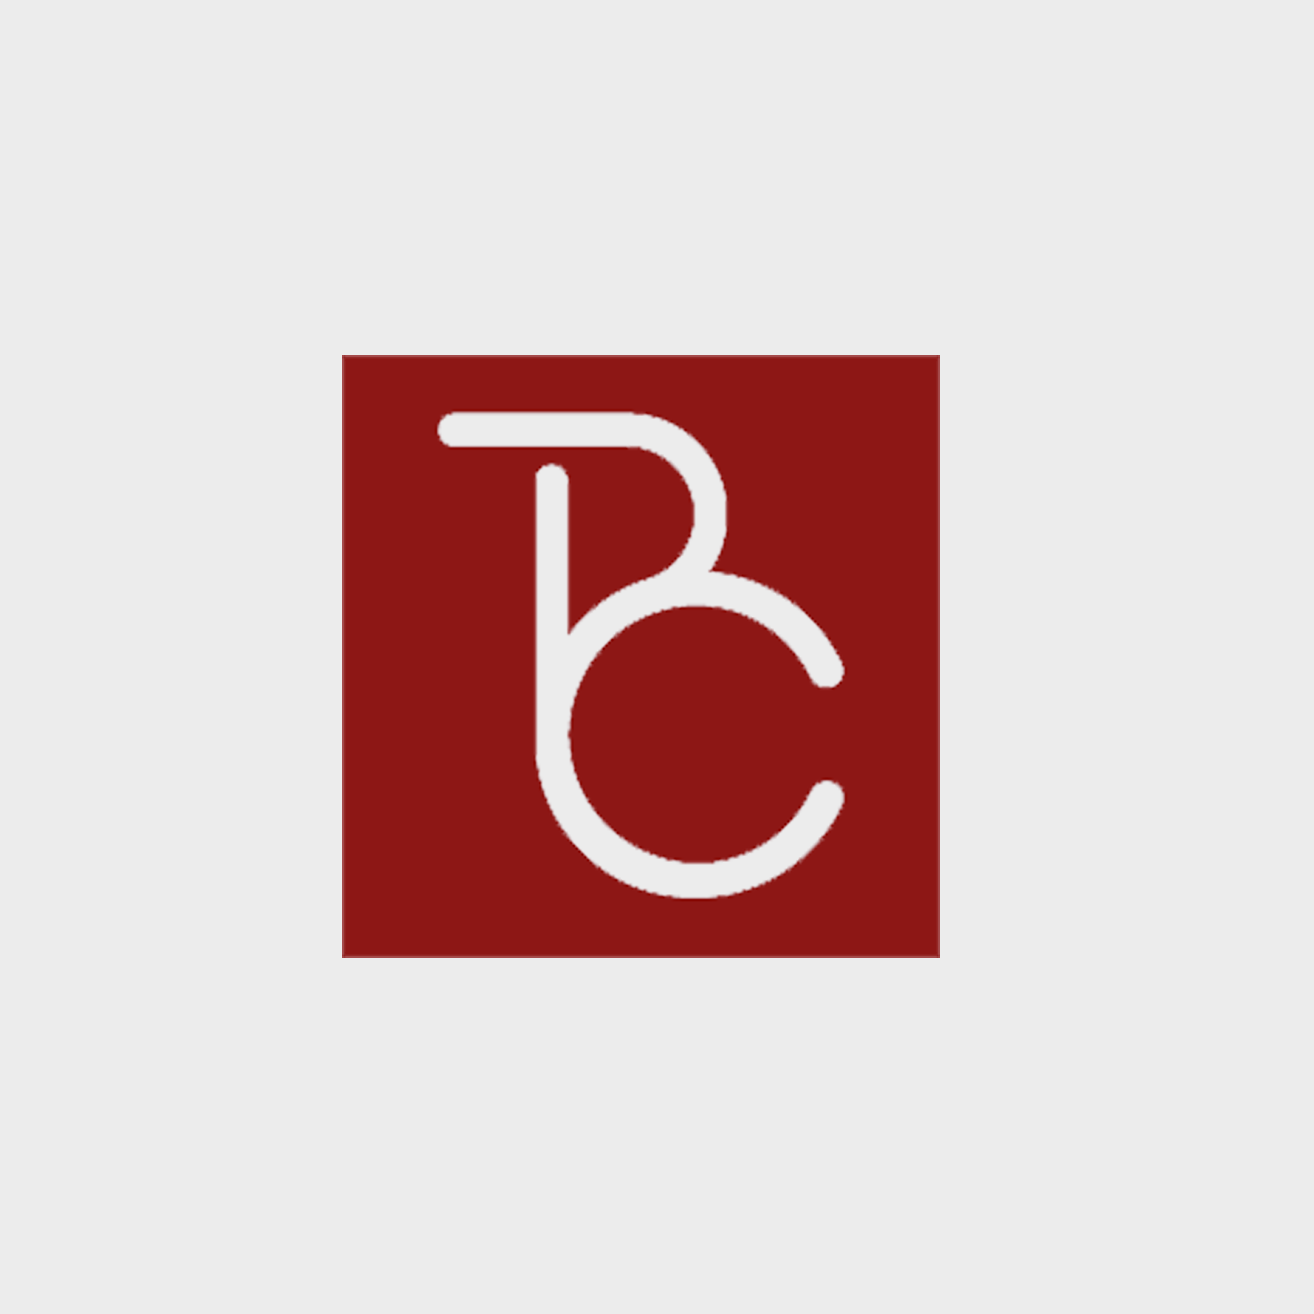 BROME Consulting & Technology